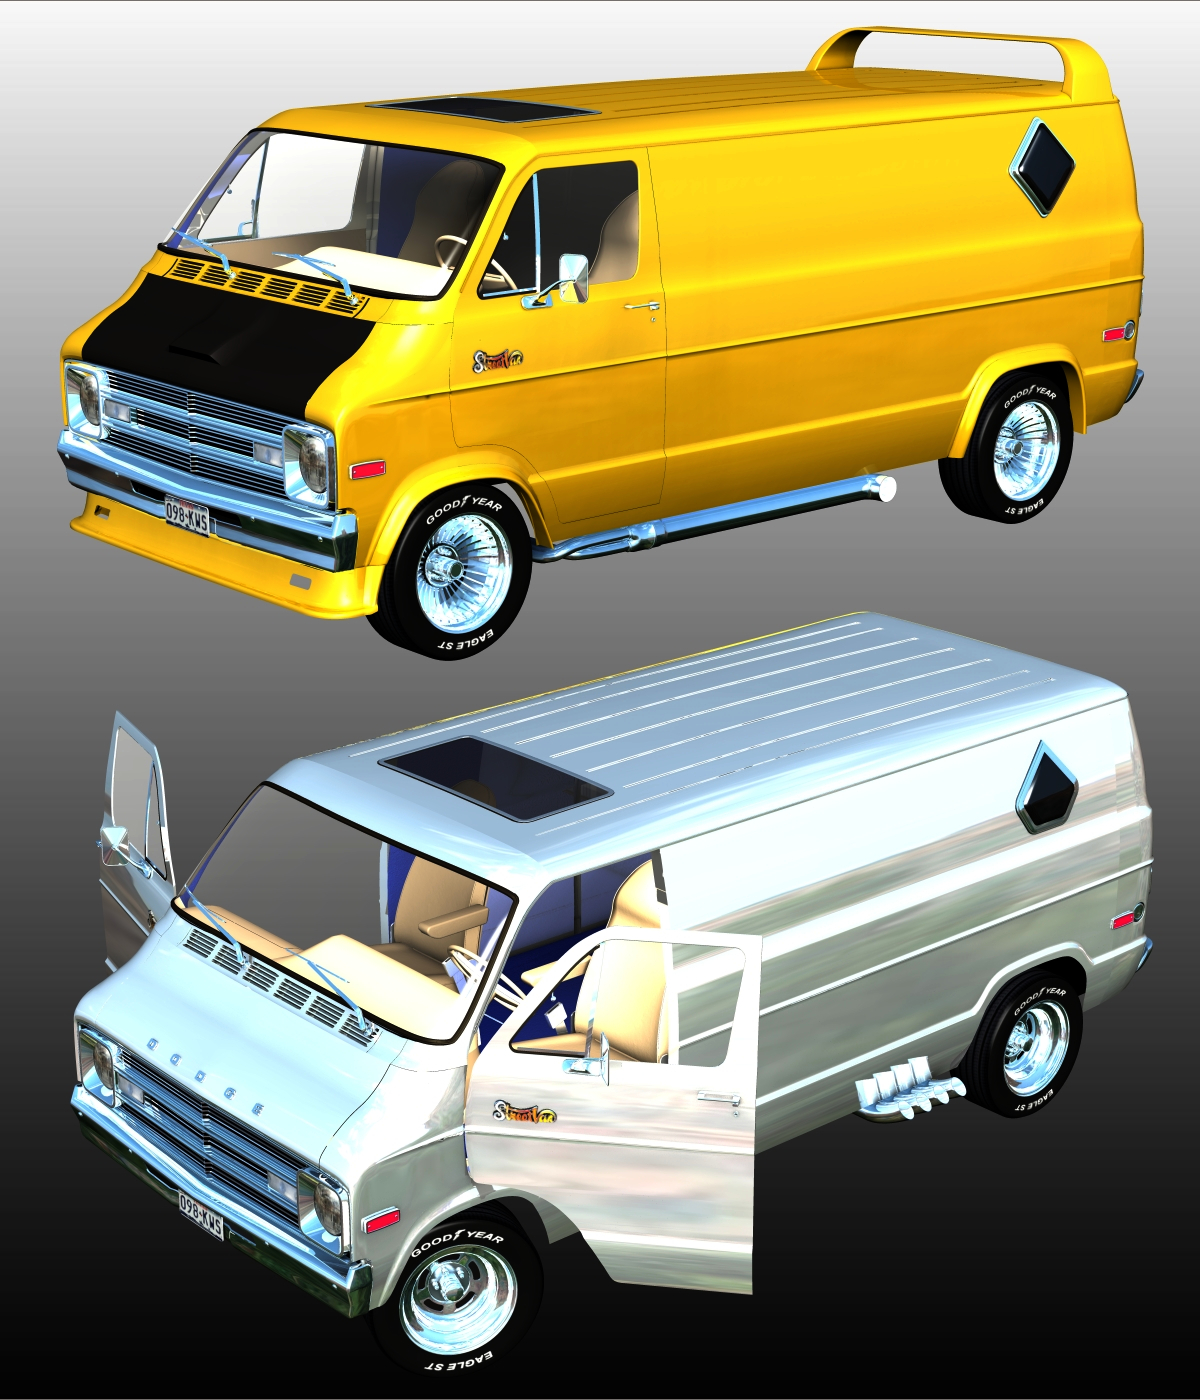 DODGE STREET VAN 1970 - Extended License